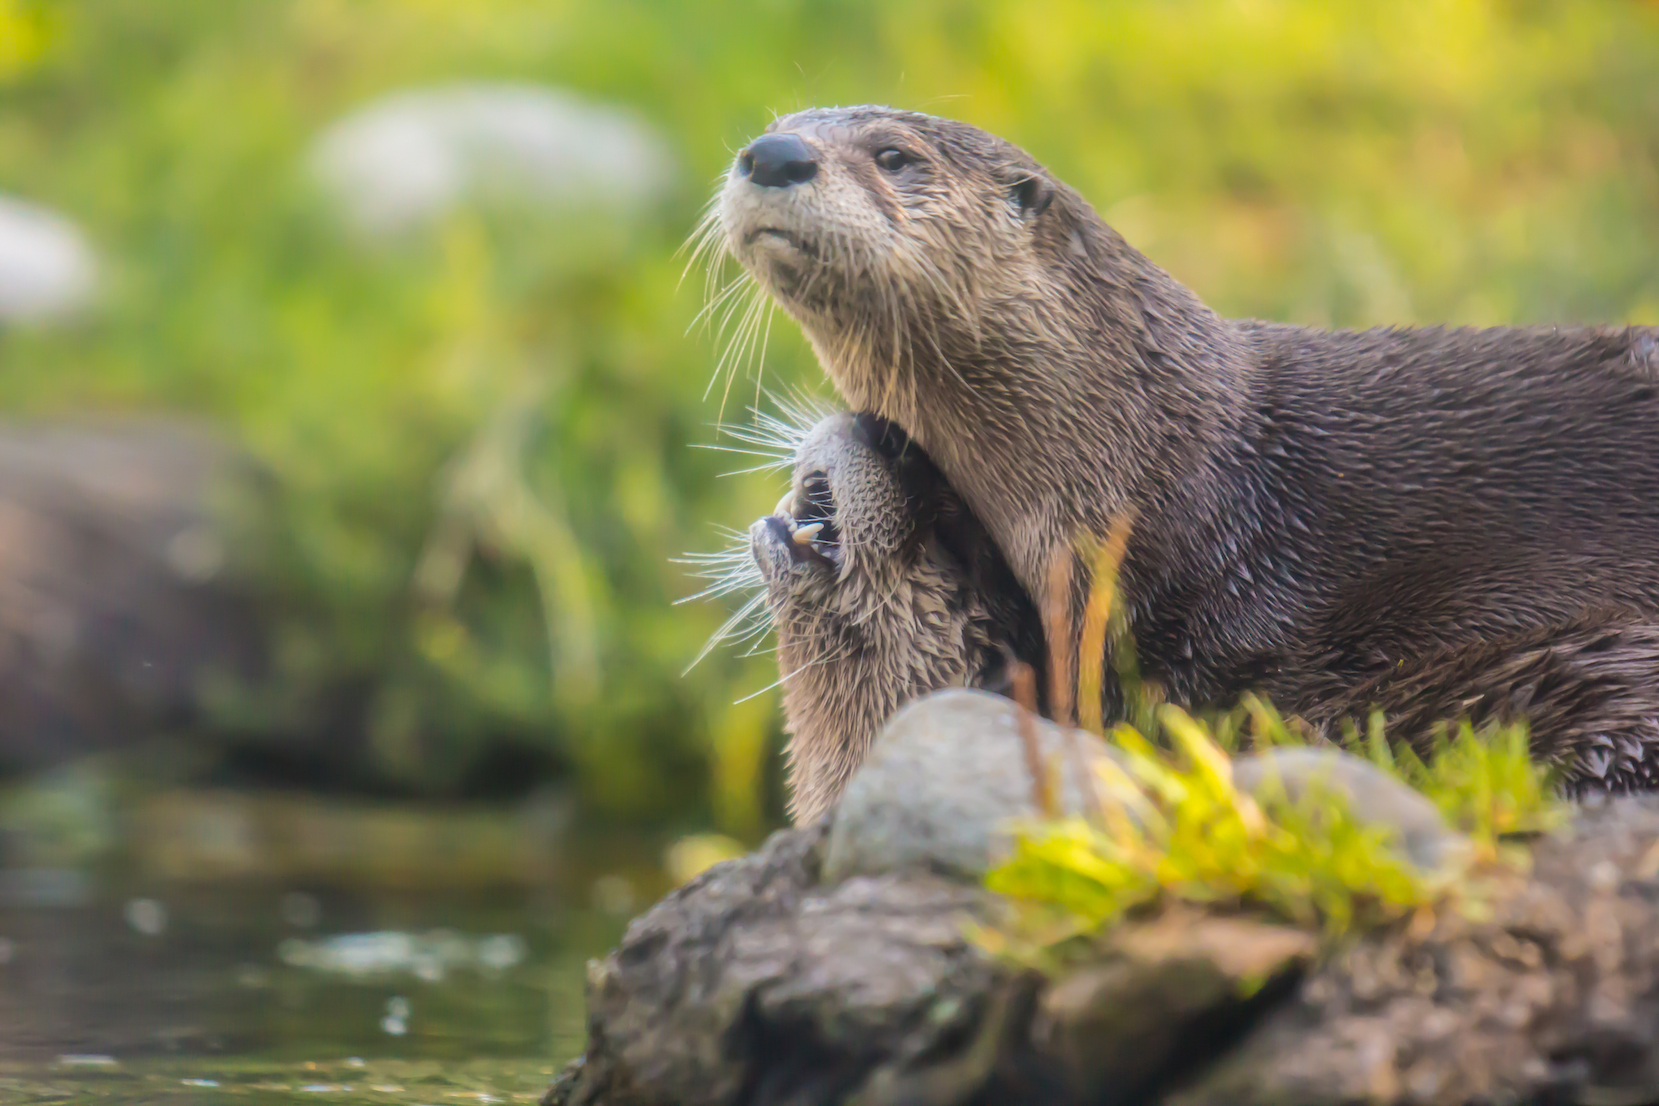 The North American river otter has become increasingly common in Illinois ponds and rivers, and has even been spotted in Chicago.